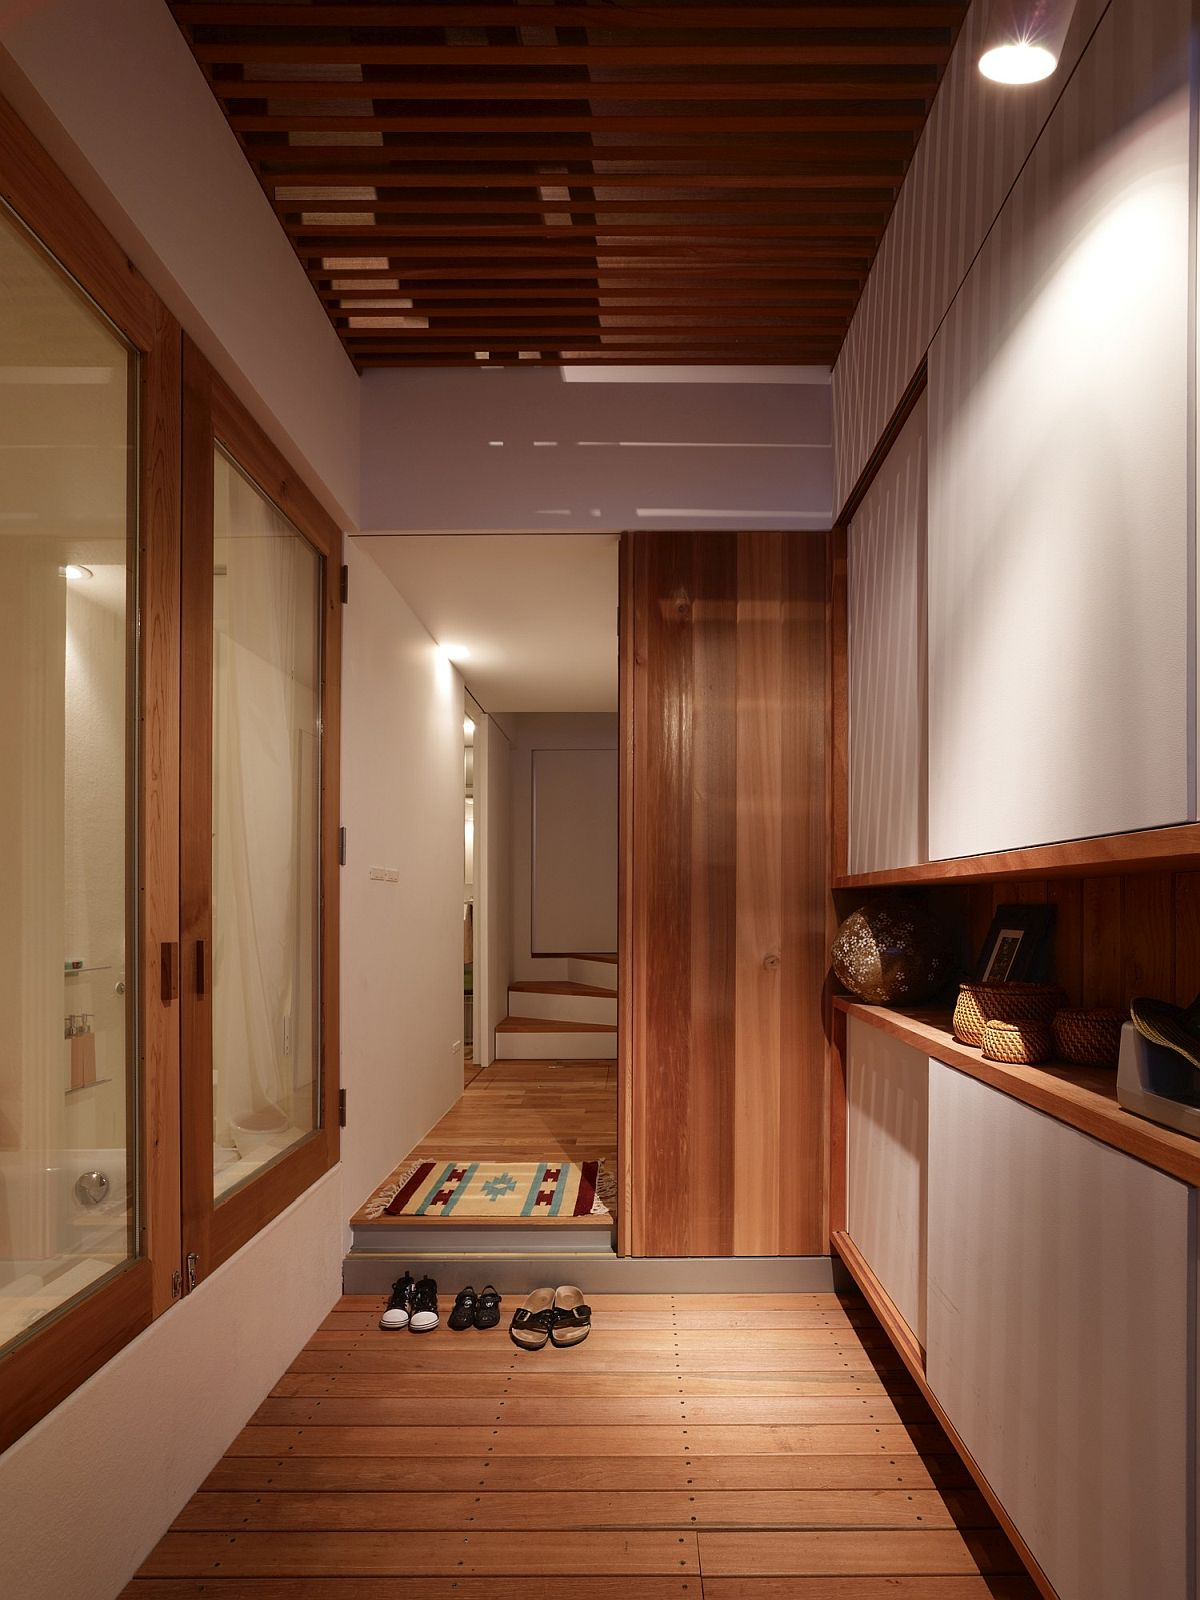 Sliding doors save space while creating a cool entry